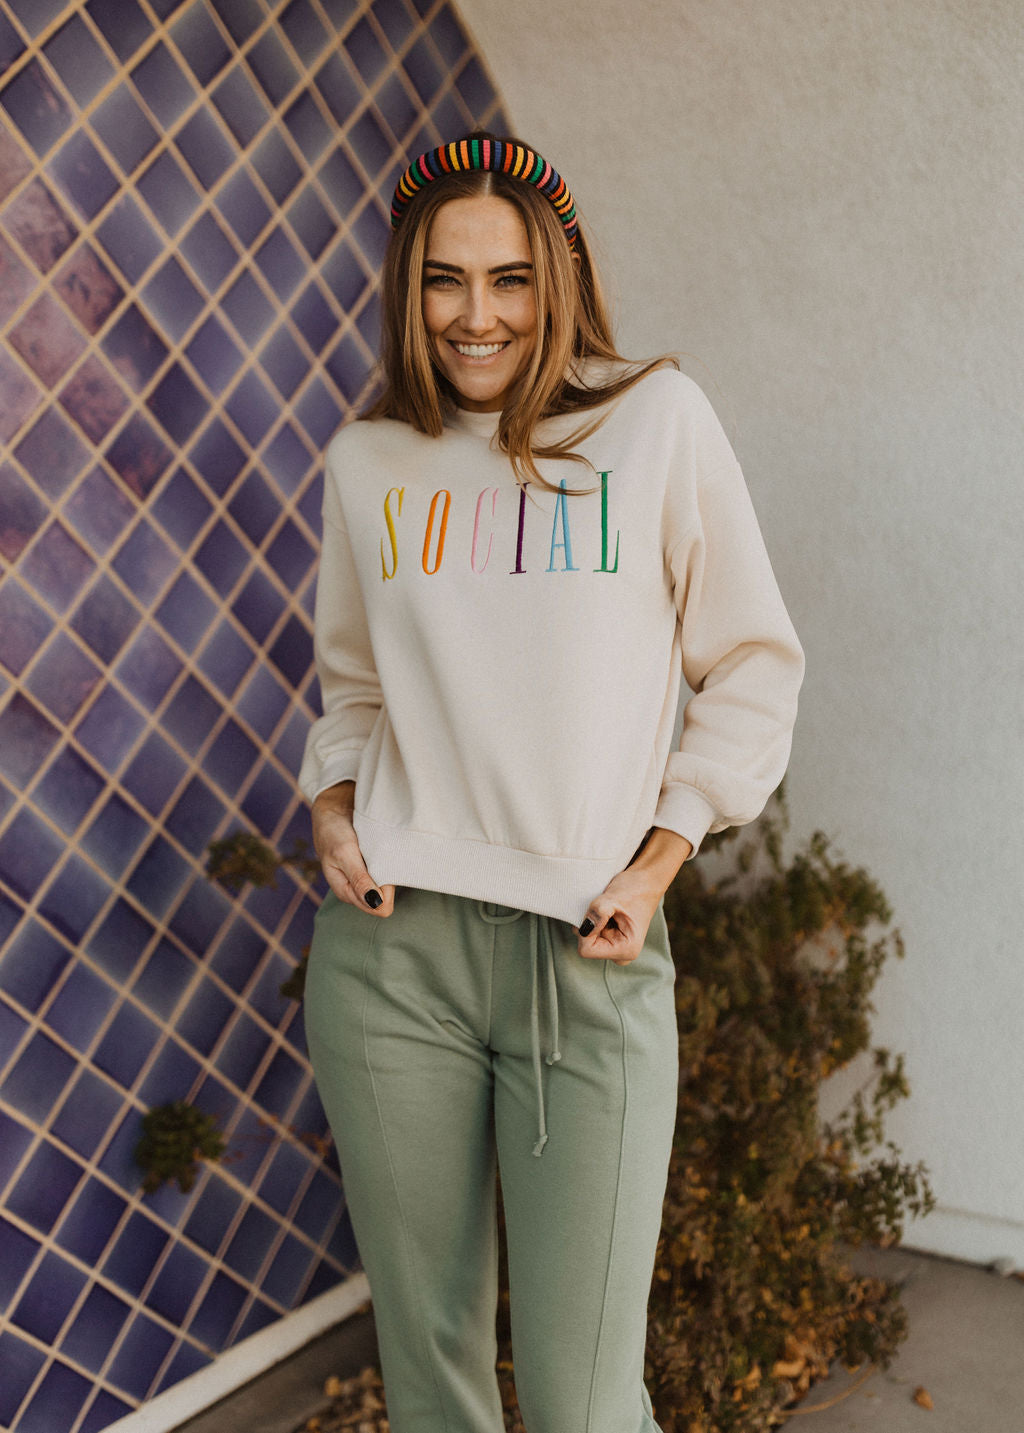 THE SOCIAL GRAPHIC SWEATSHIRT IN CREAM